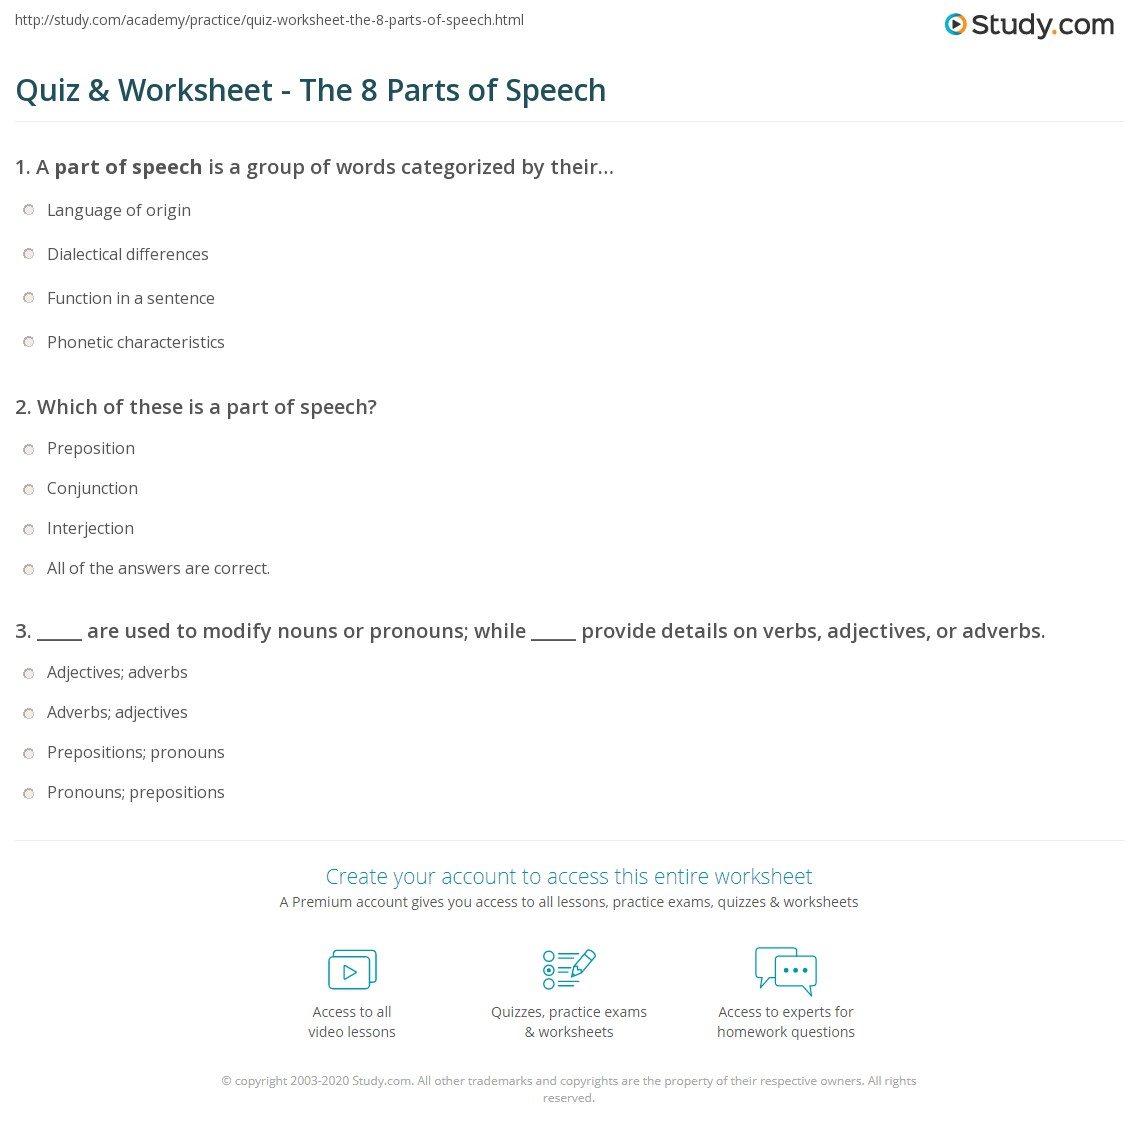 Quiz Worksheet The 8 Parts Of Speech Study